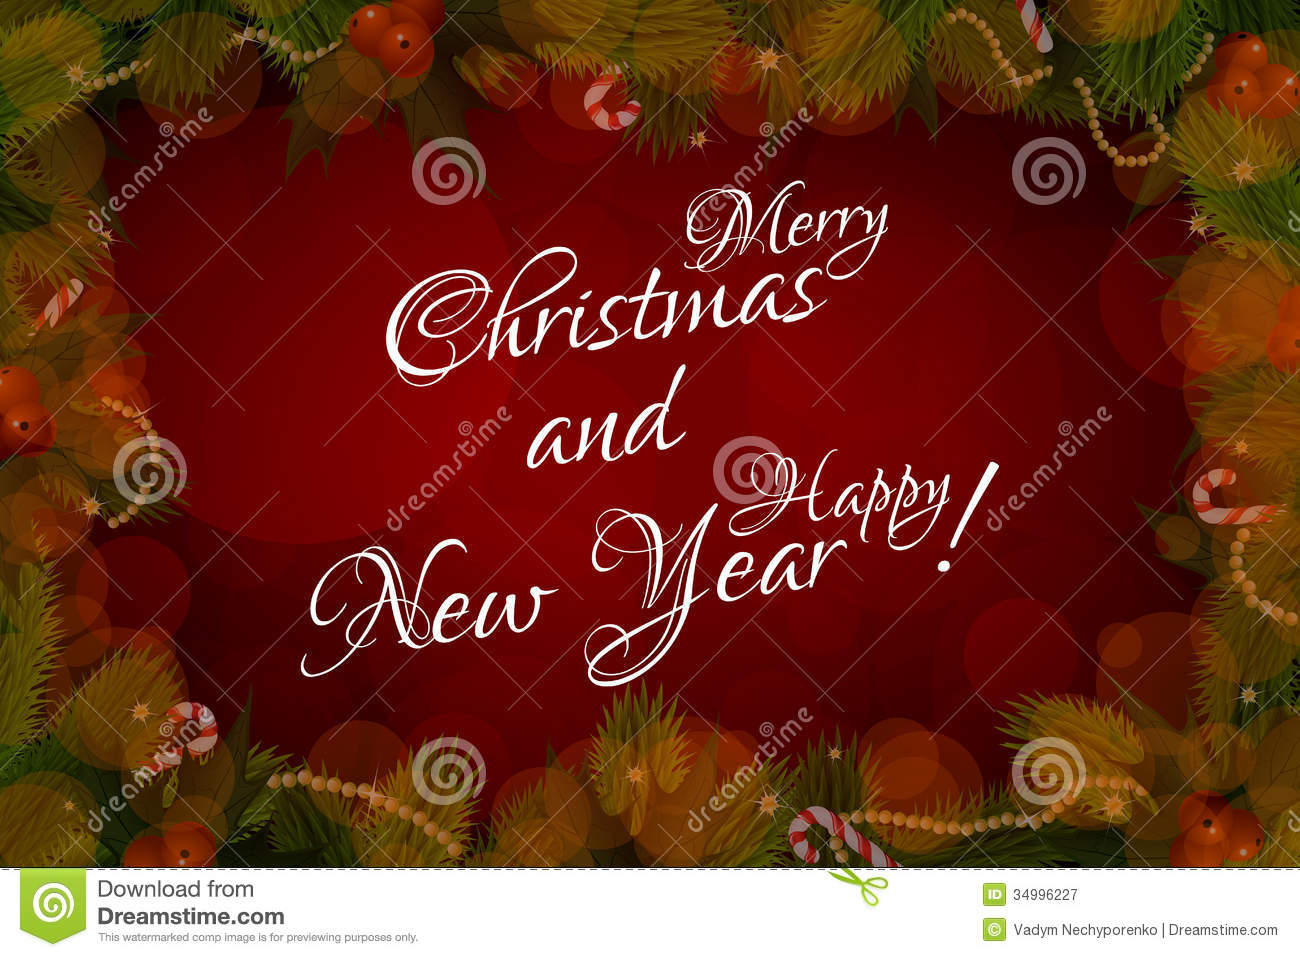 Merry Christmas And Happy New Year Card Royalty Free Stock ...